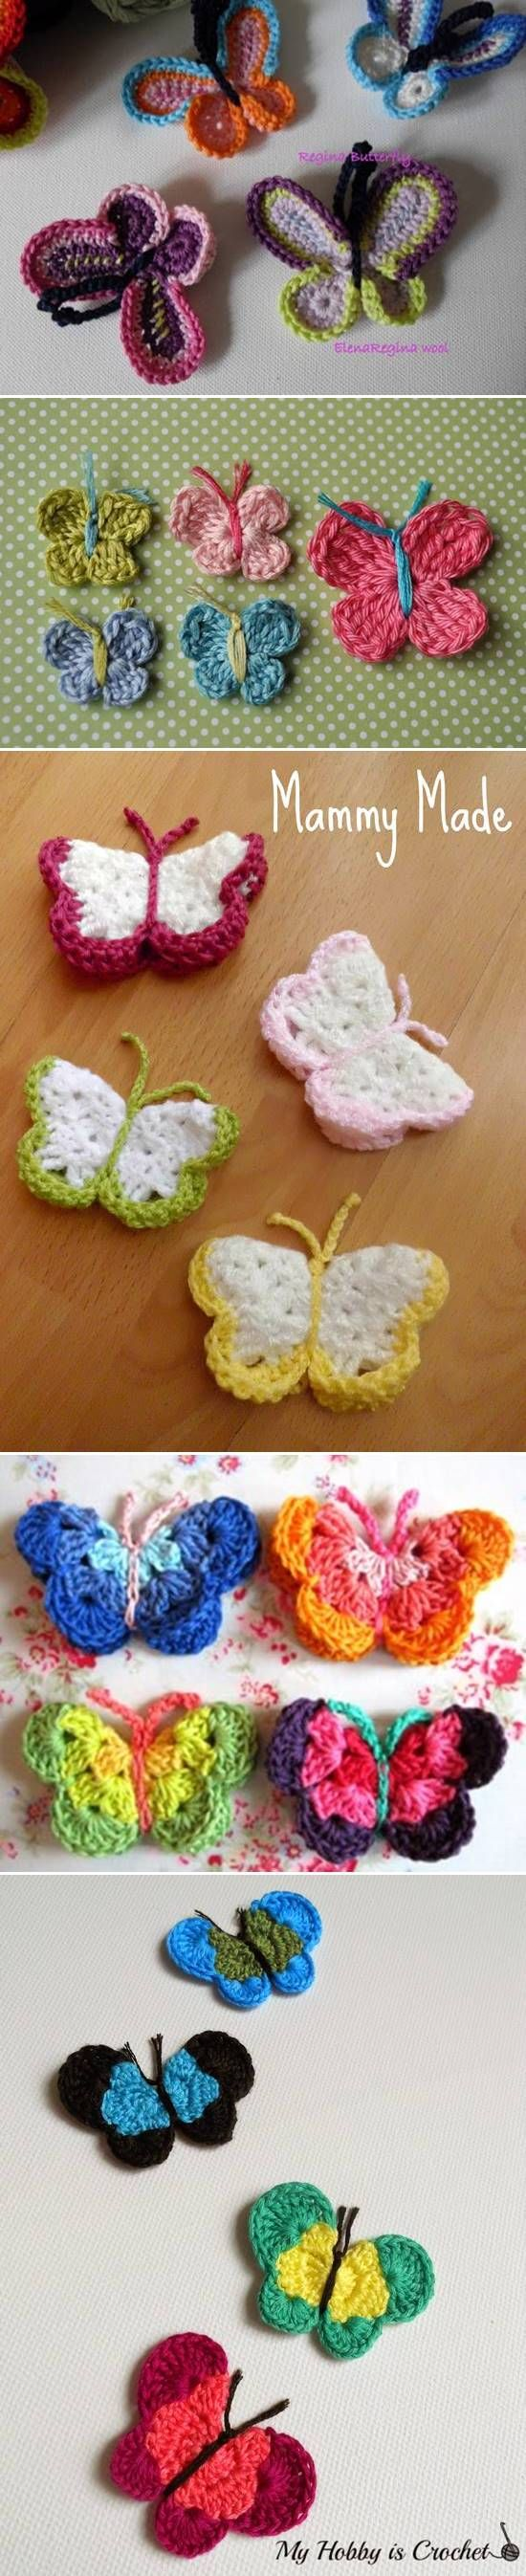 DIY Lovely Colorful Crochet Butterflies #crochet #patterns #butterfly